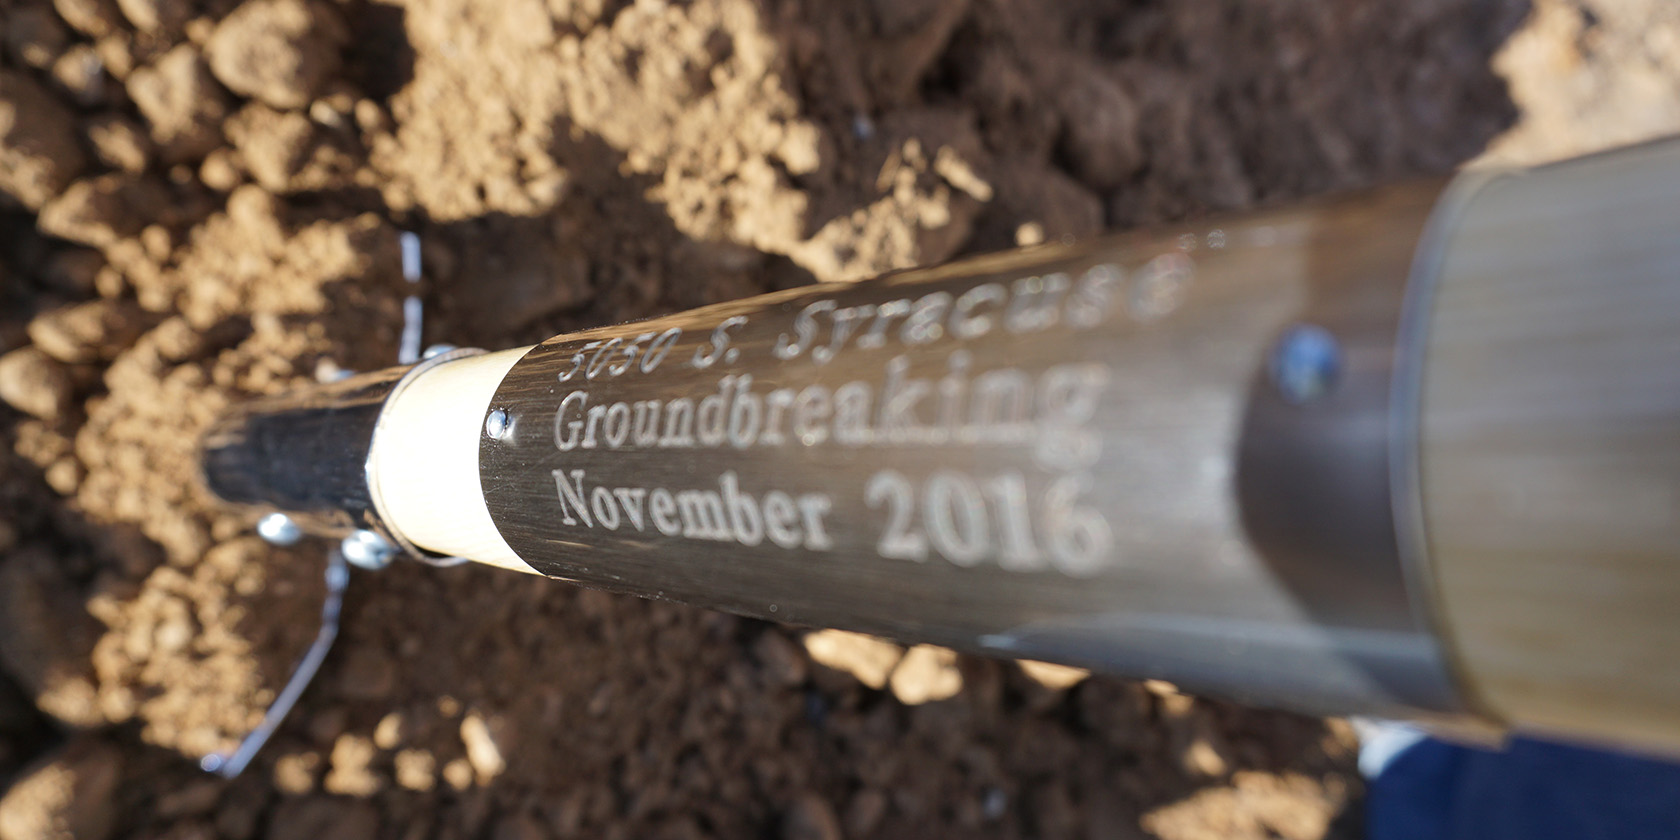 2016 1121 50Fifty Groundbreaking